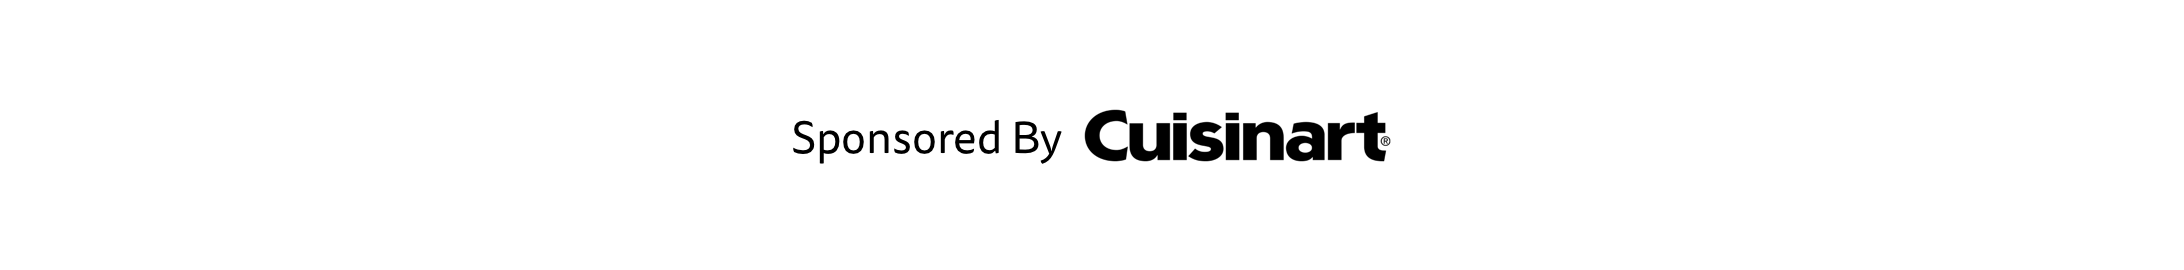 Sponsored By Cuisinart